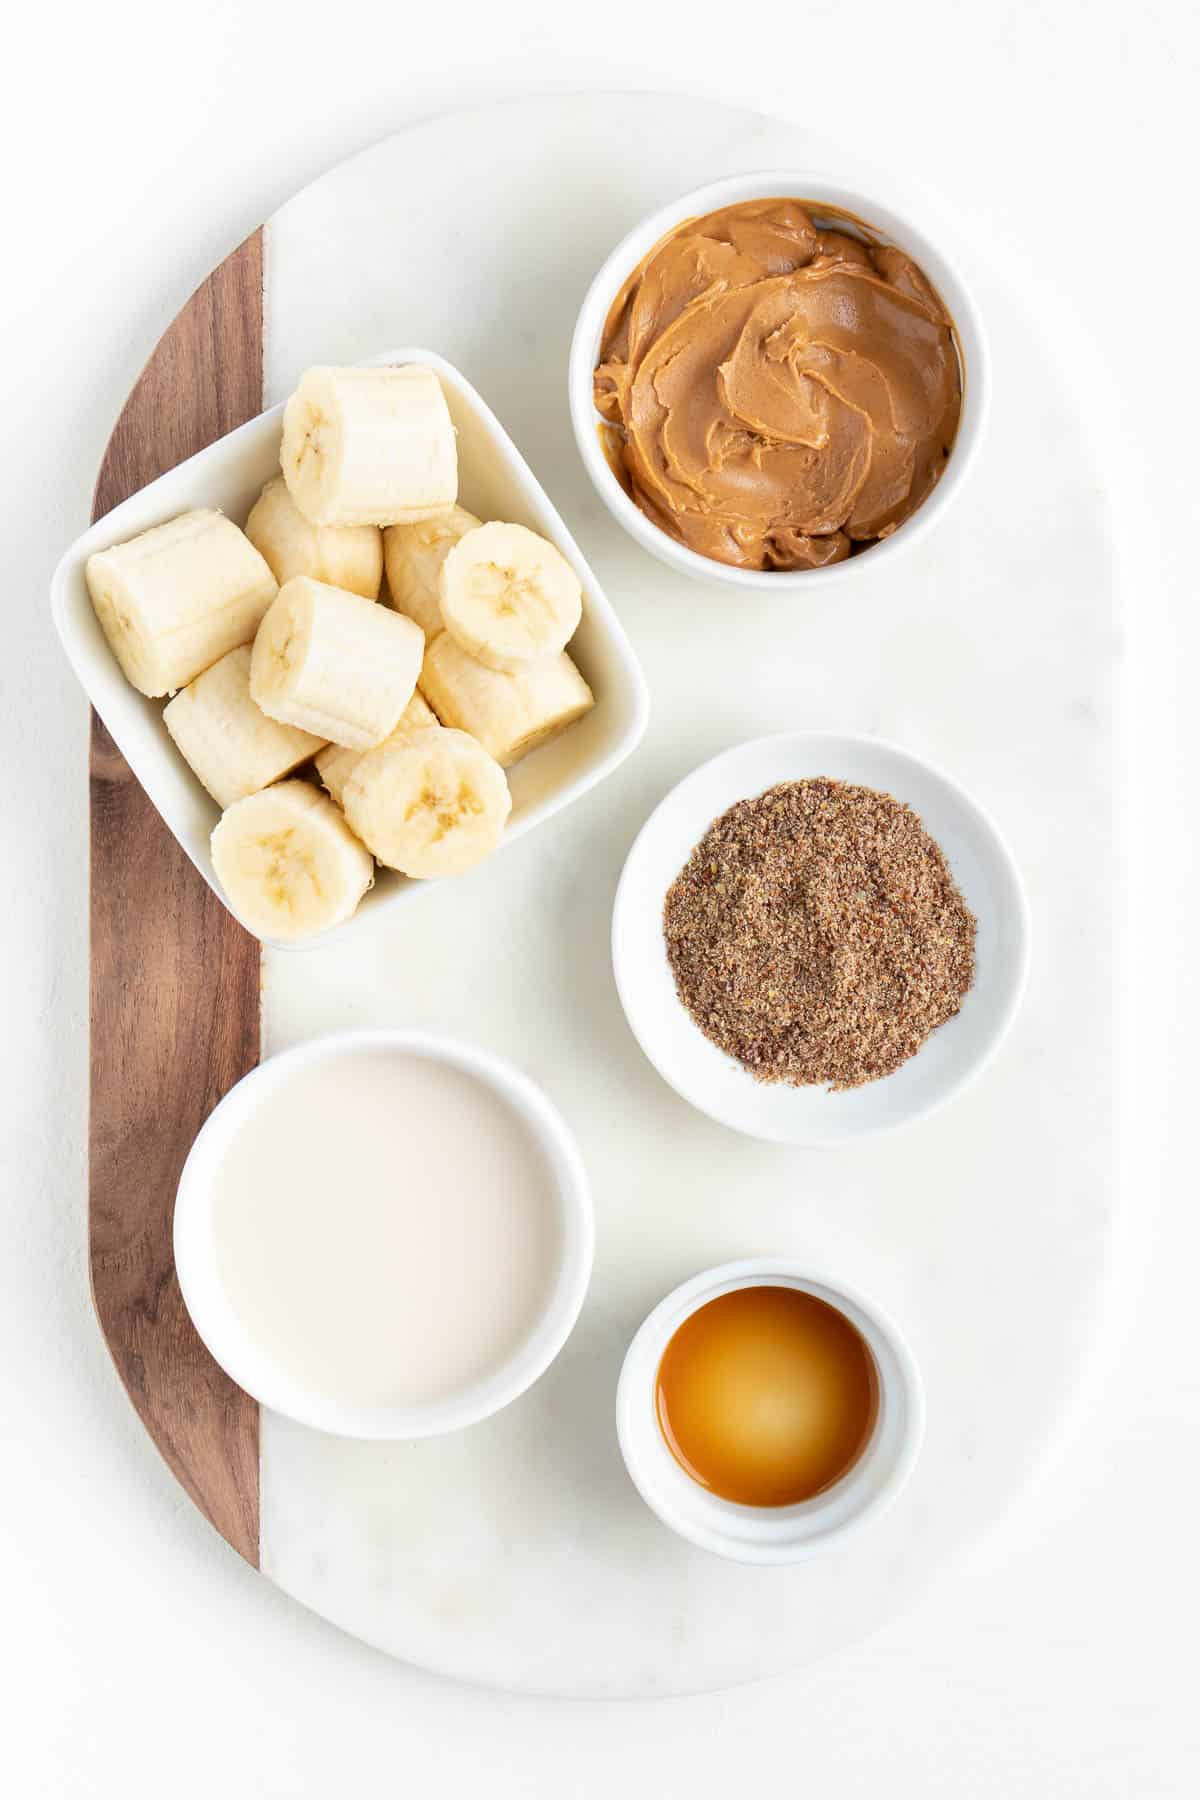 small bowls filled with chopped bananas, flaxseed, vanilla, almond milk, and nut butter on a white marble board